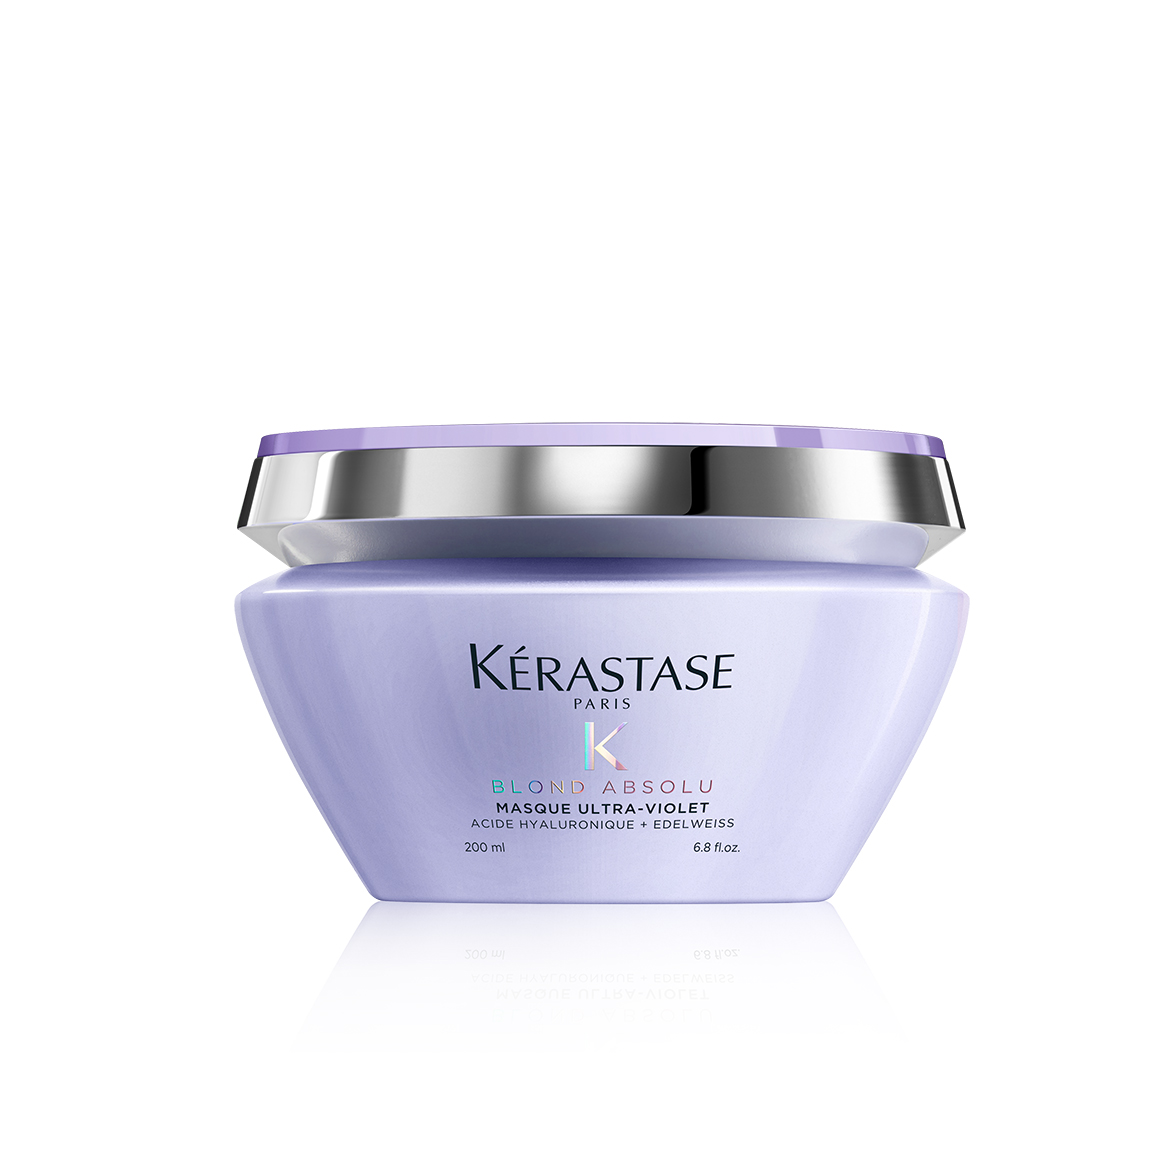 Masque Ultra-Violet - Blond Absolu